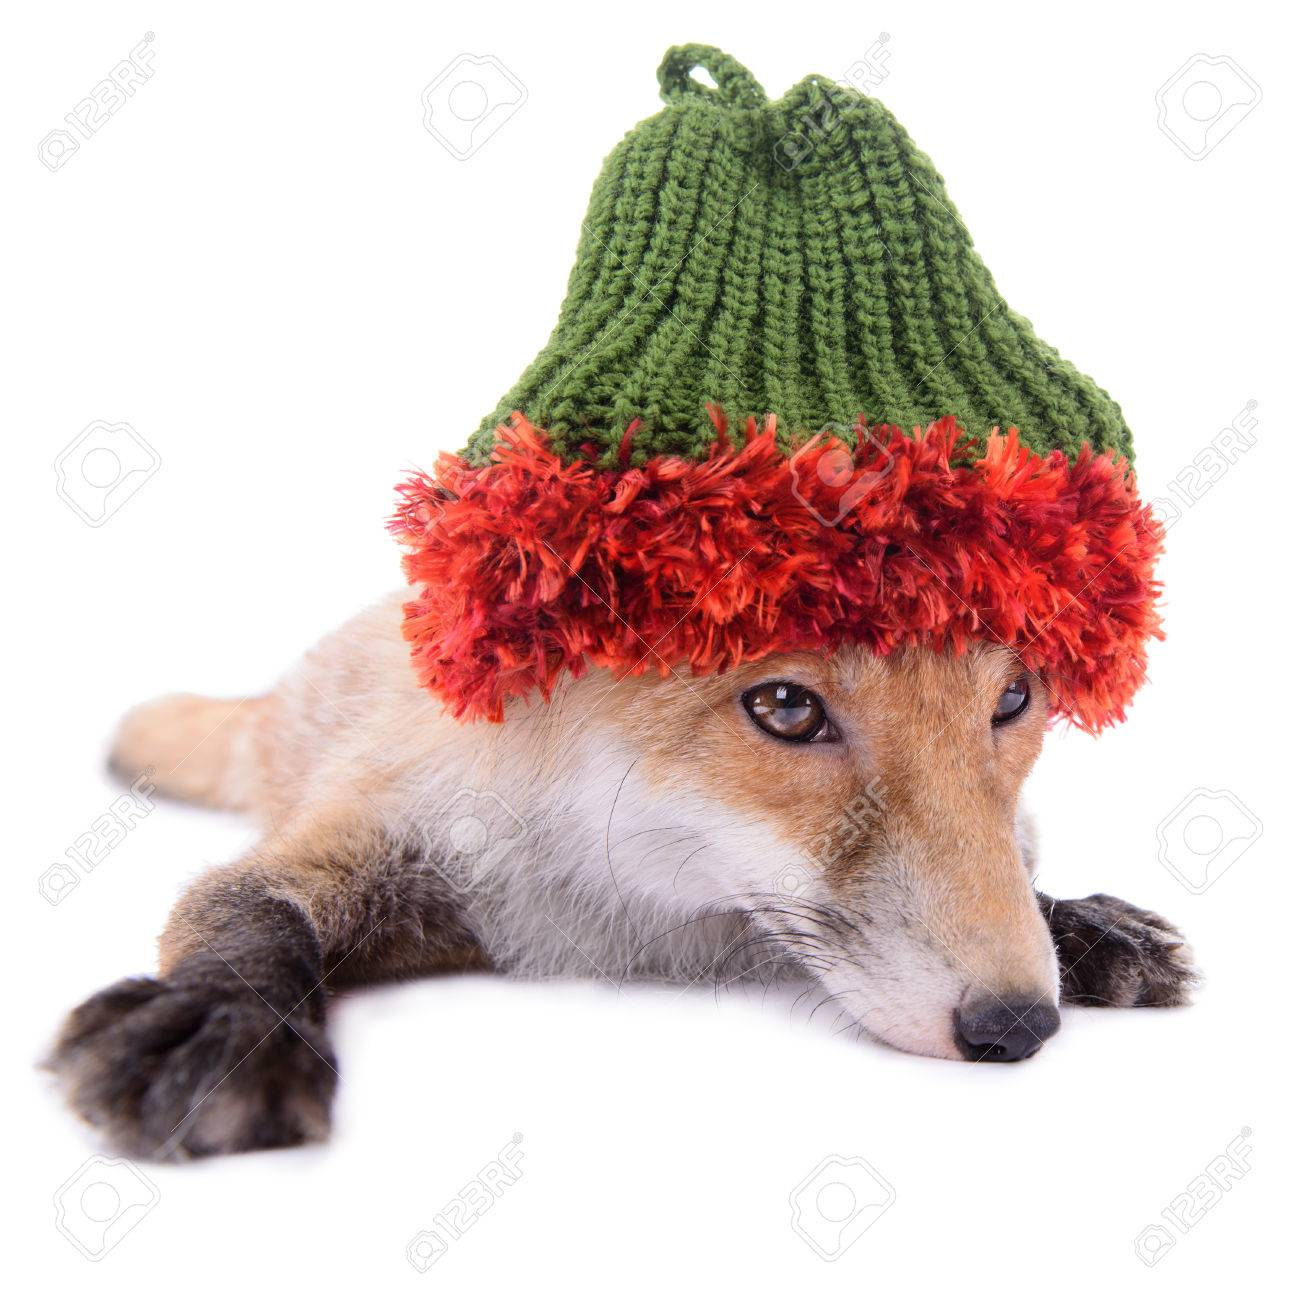 Red fox with a hat new year or christmas animal isolated on white background